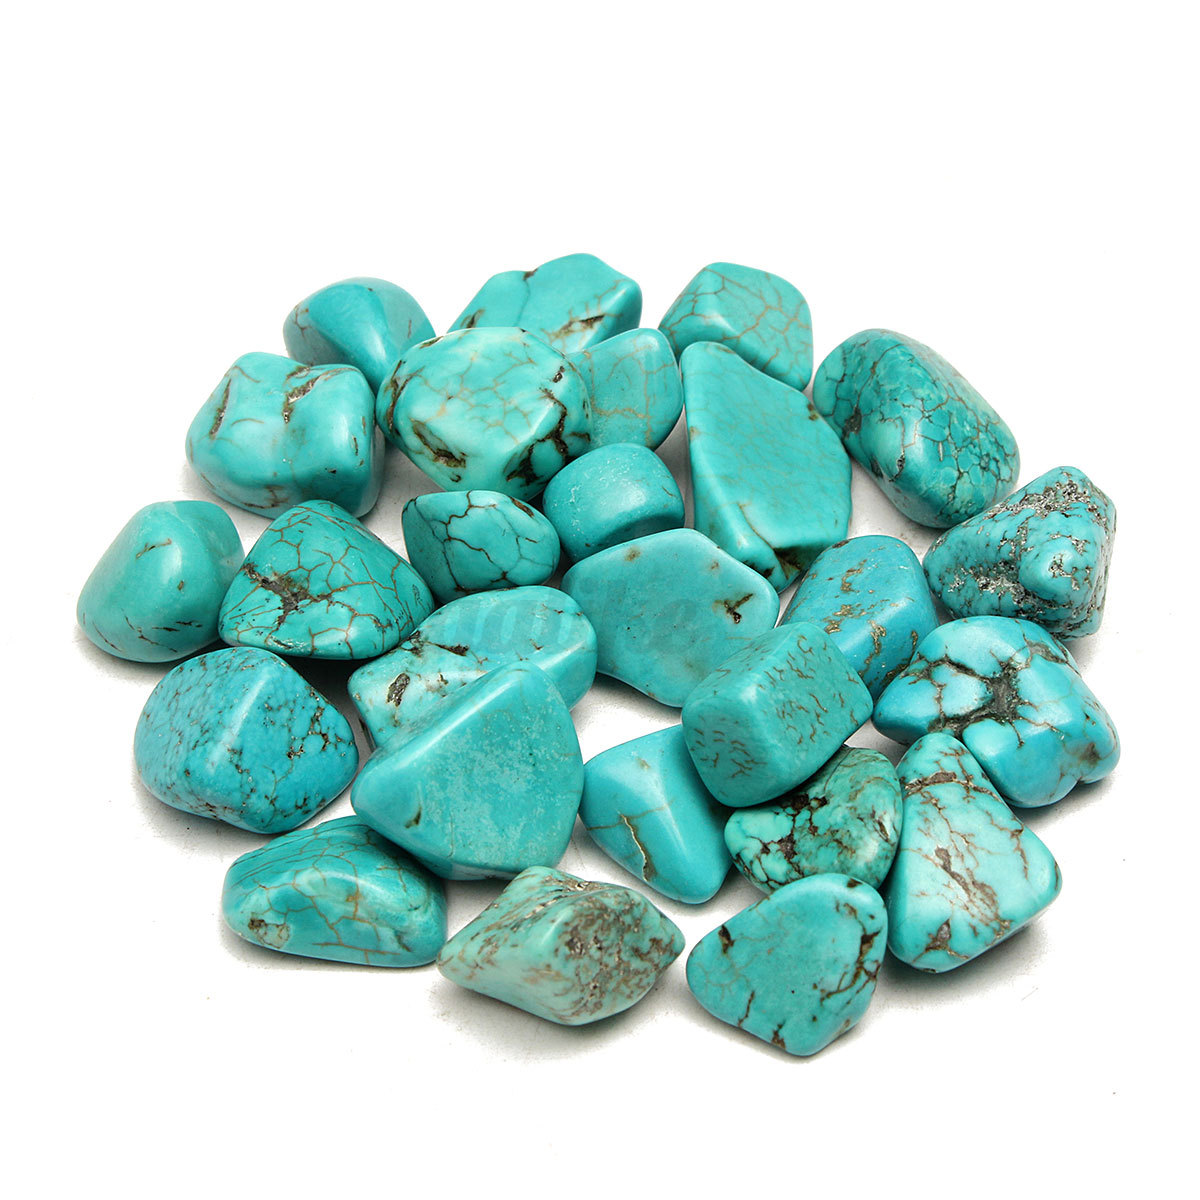 100g blue turquoise polished healing nugget